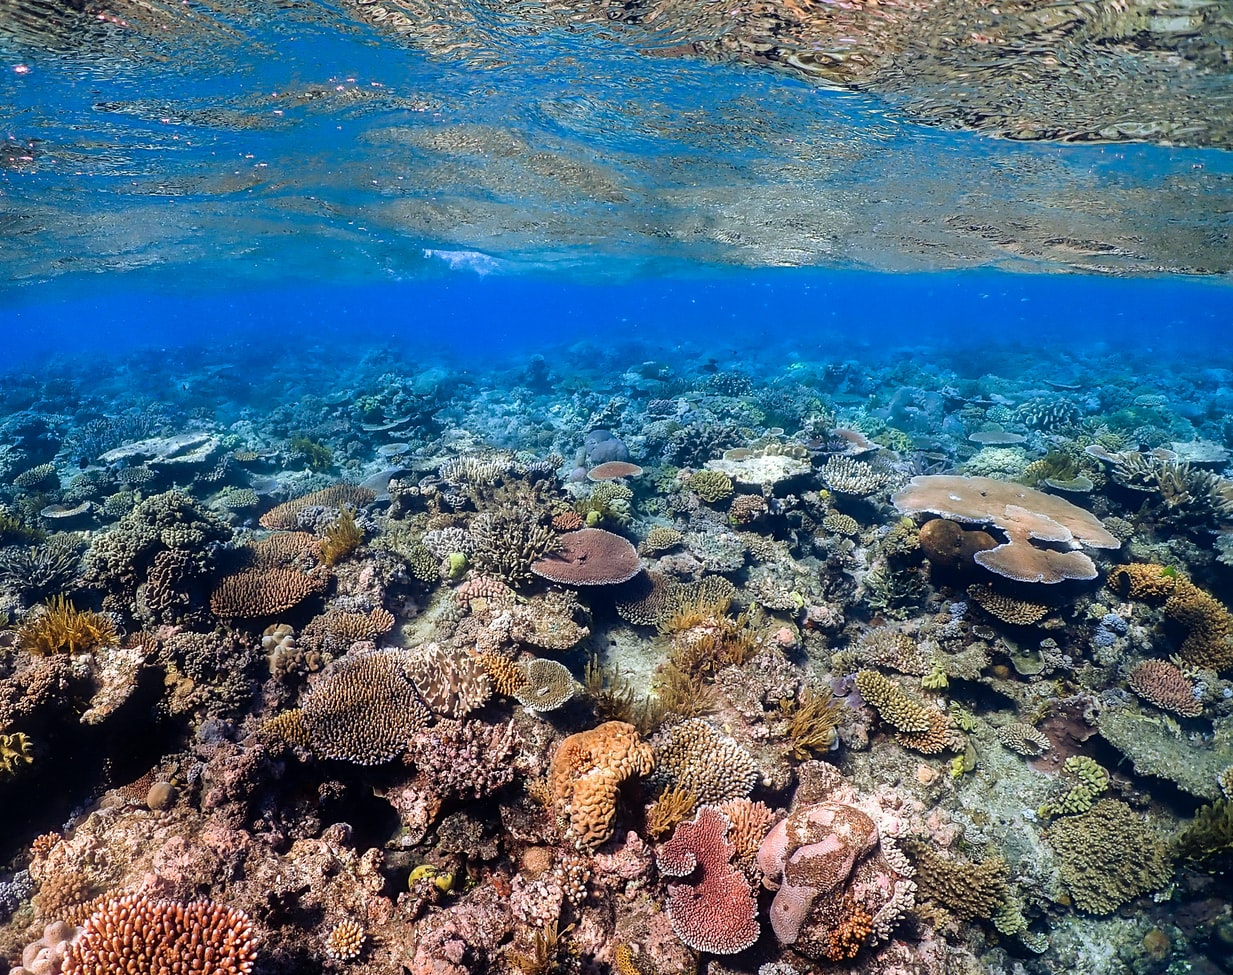 Australian Government Rejects Proposed Great Barrier Reef Protections from UN